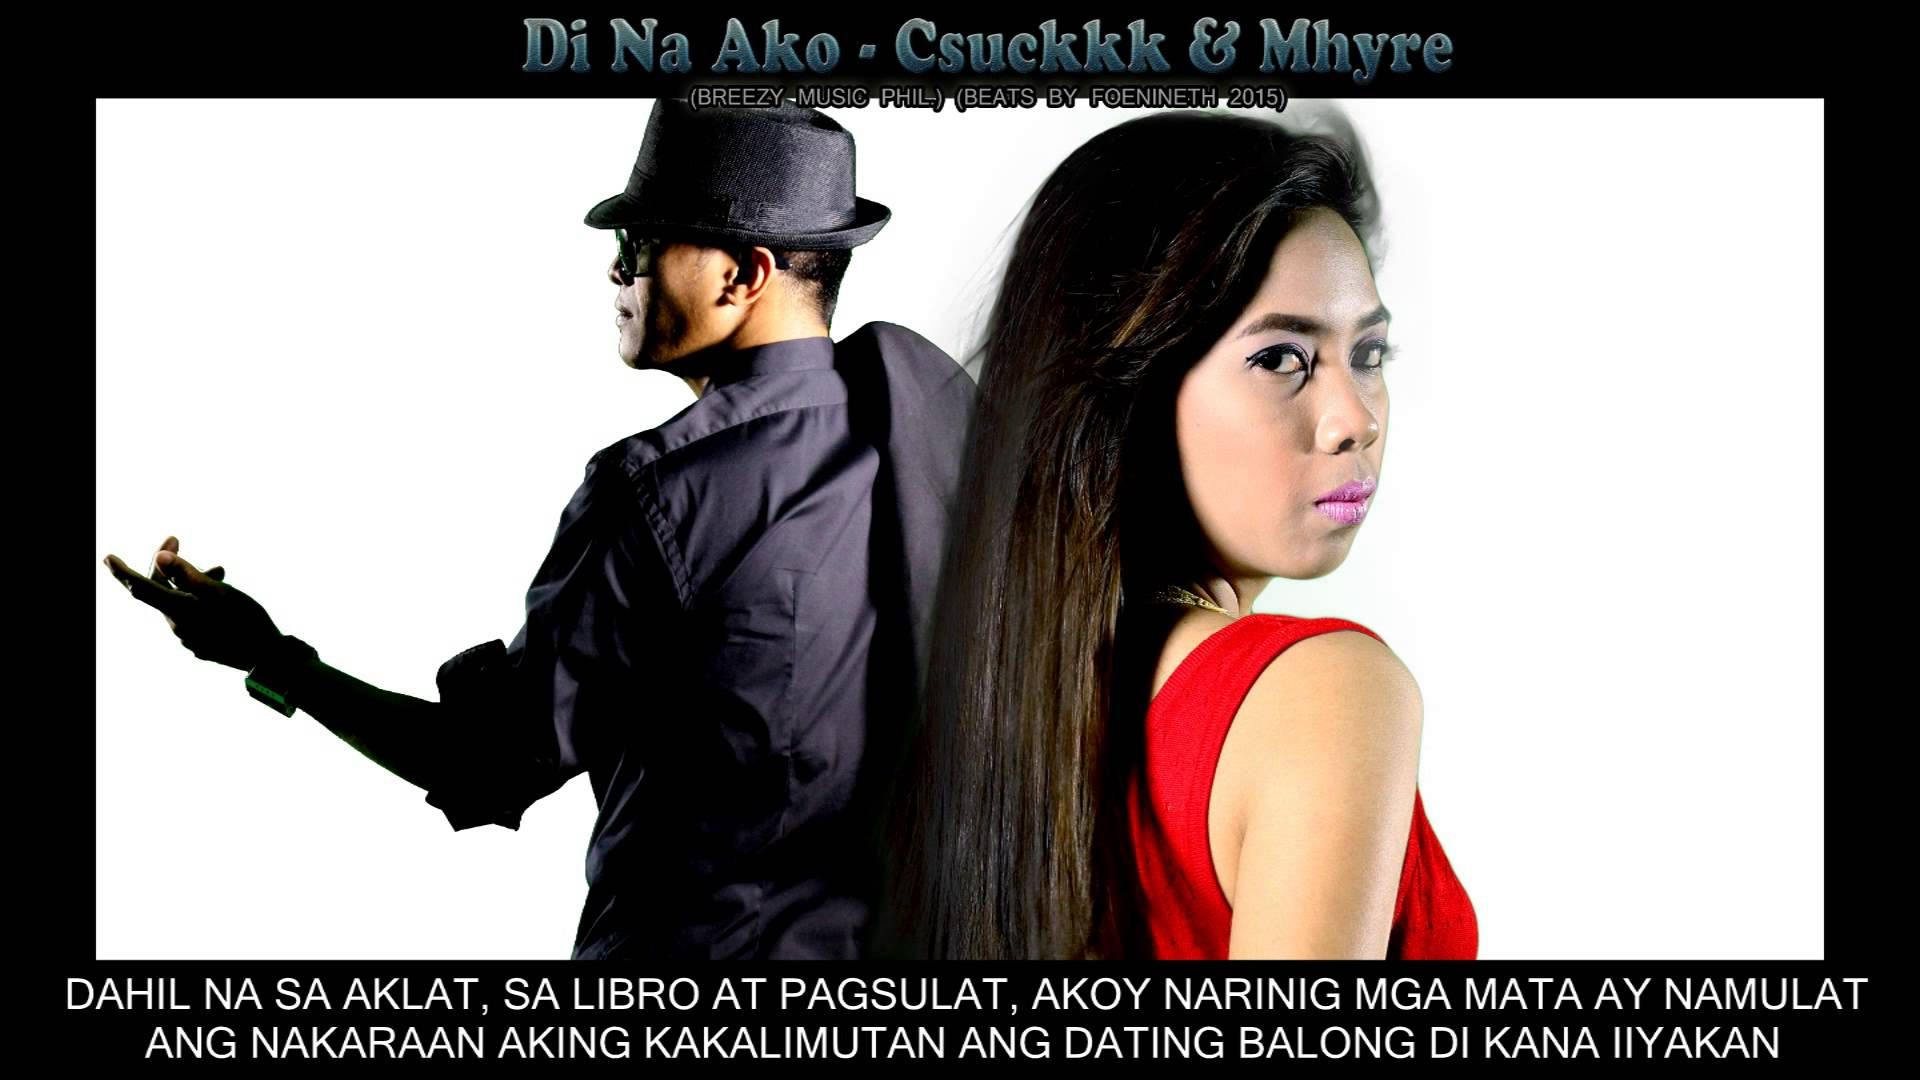 Hindi Na Ako - Csuckkk & Mhyre ( Breezy Music Phil